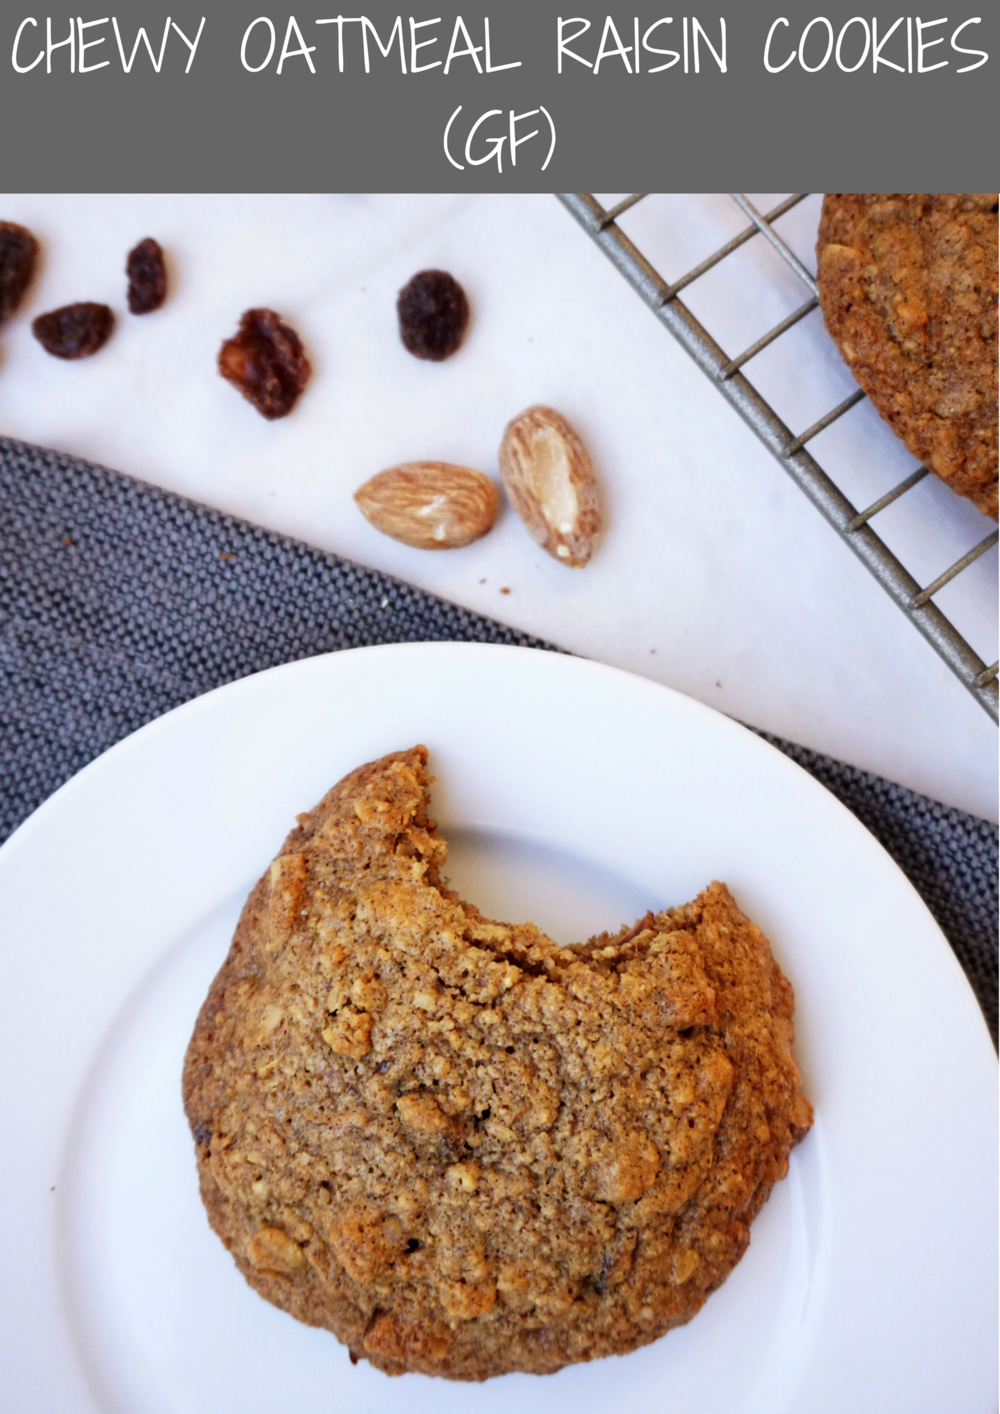 CHEWY OATMEAL RAISIN COOKIES (GF).png